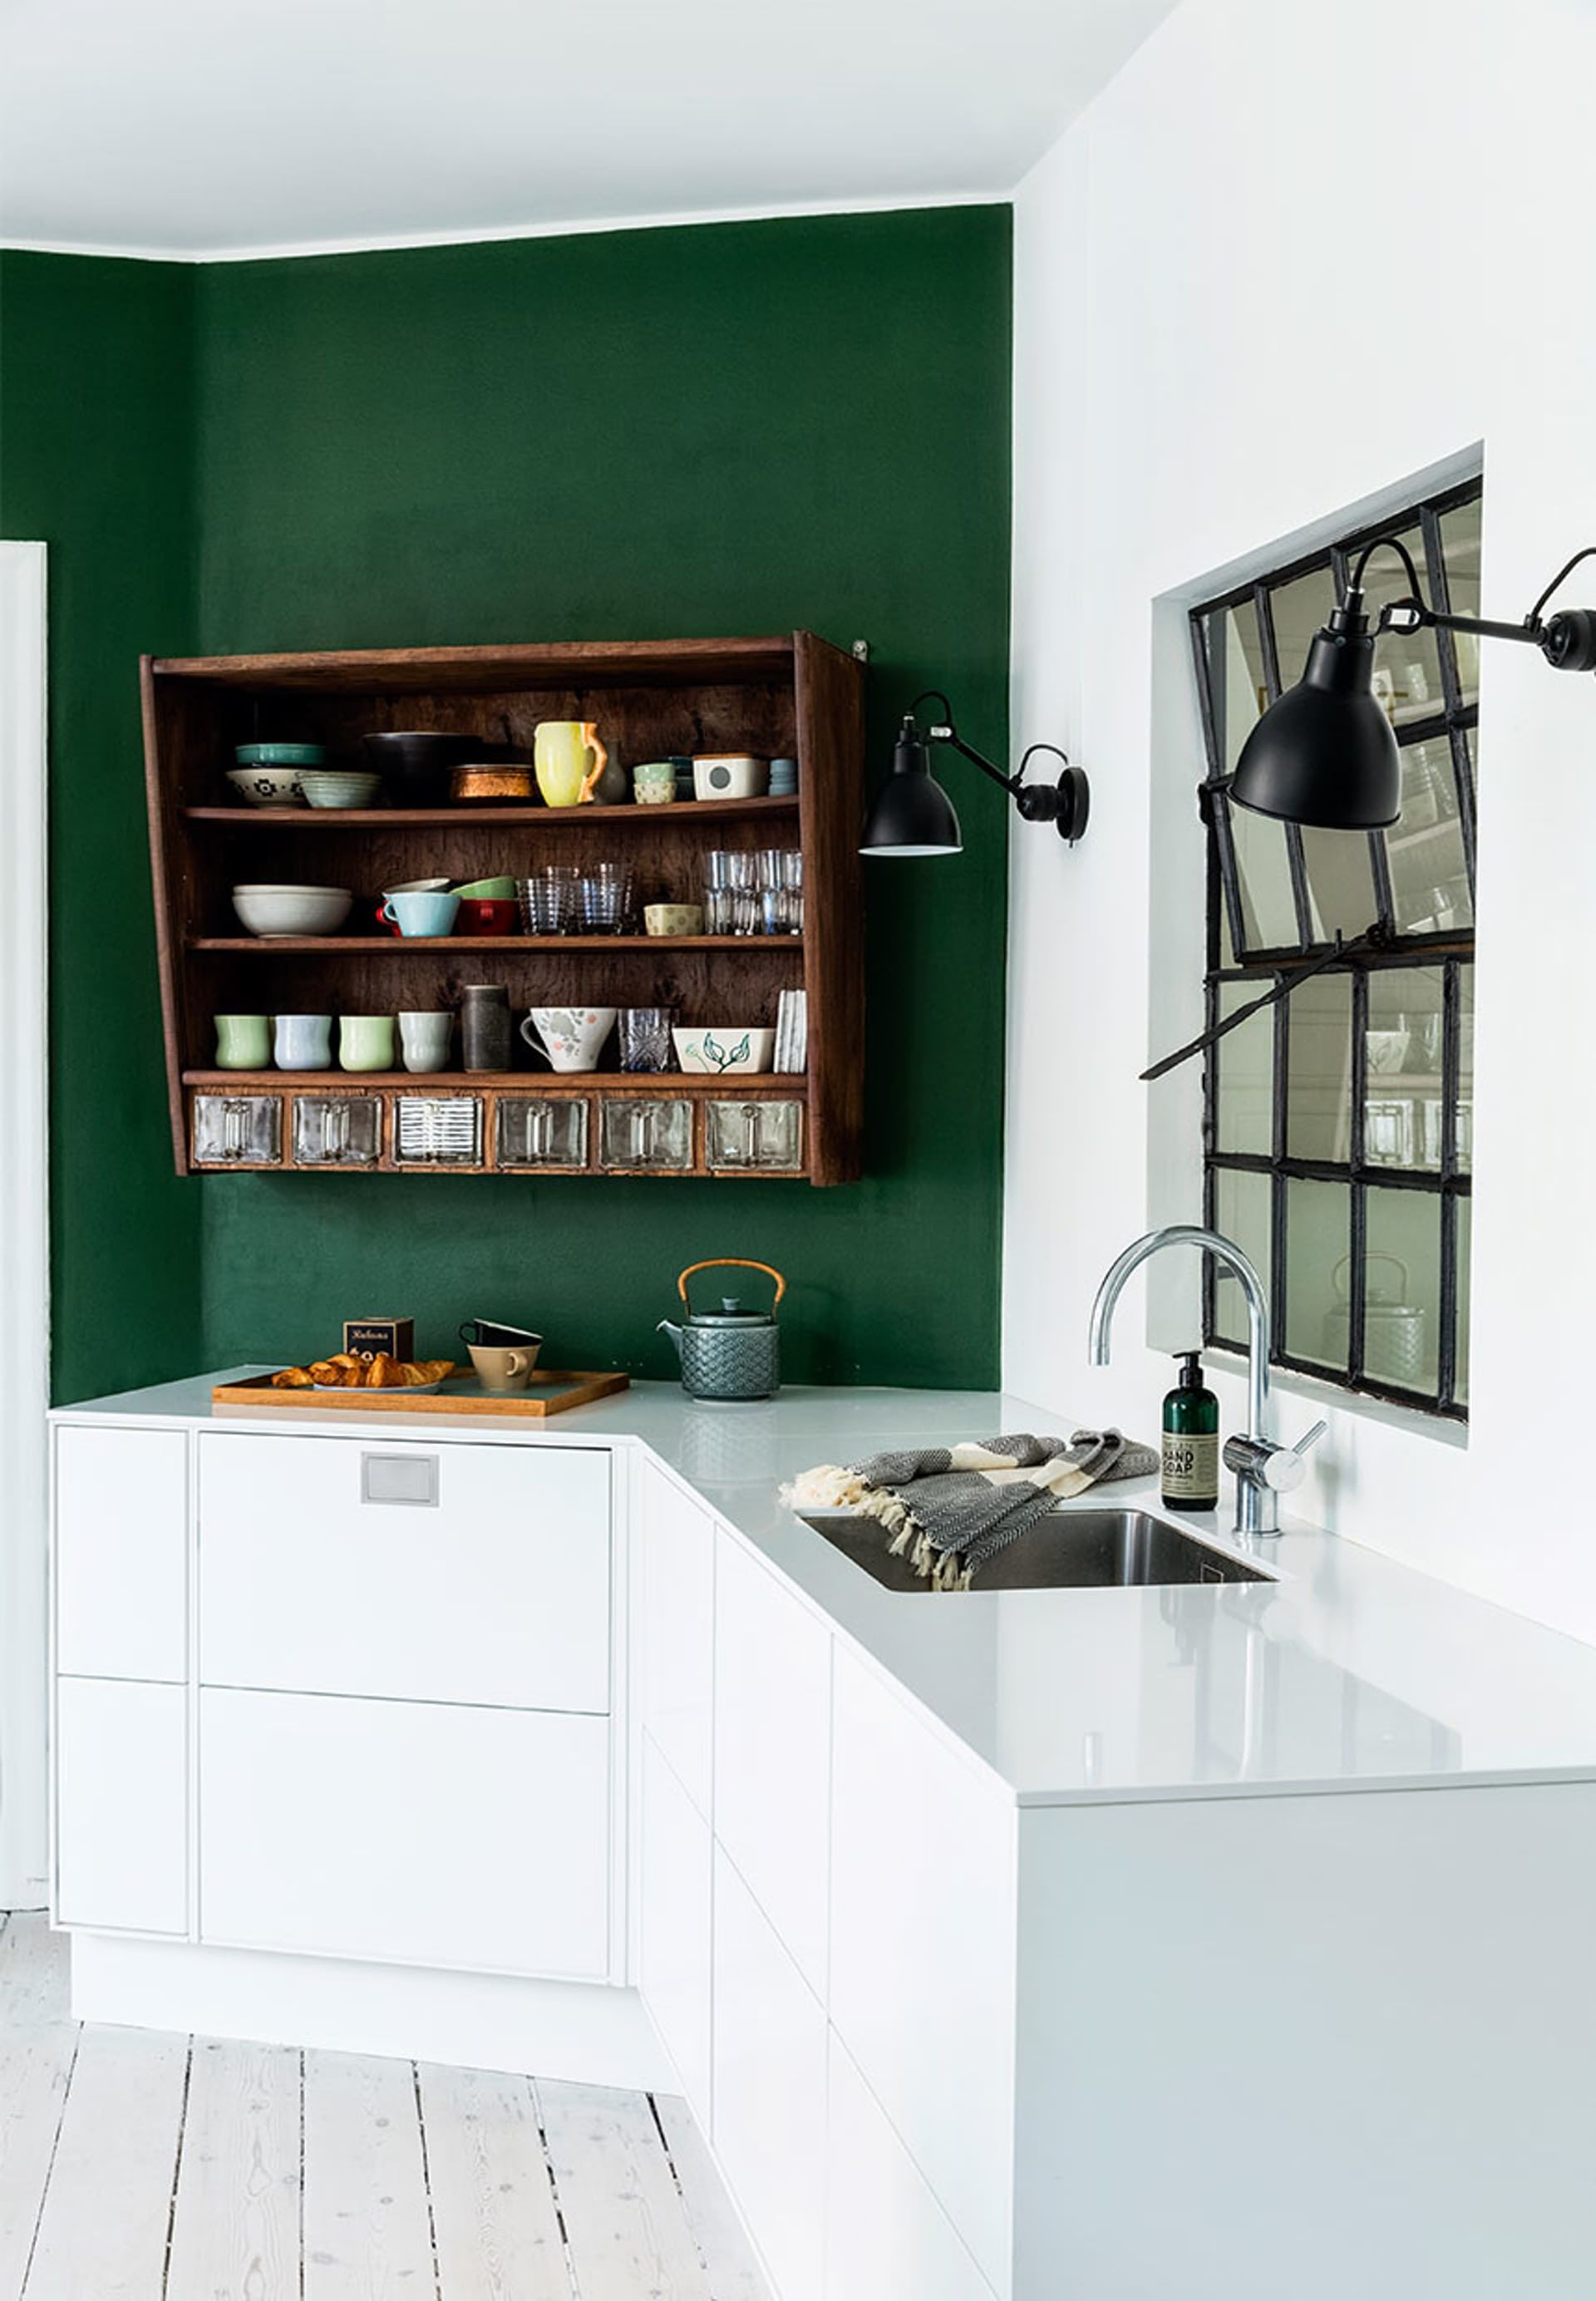 Bespoke kitchen design by Play Associates with brass frame Max Lamb